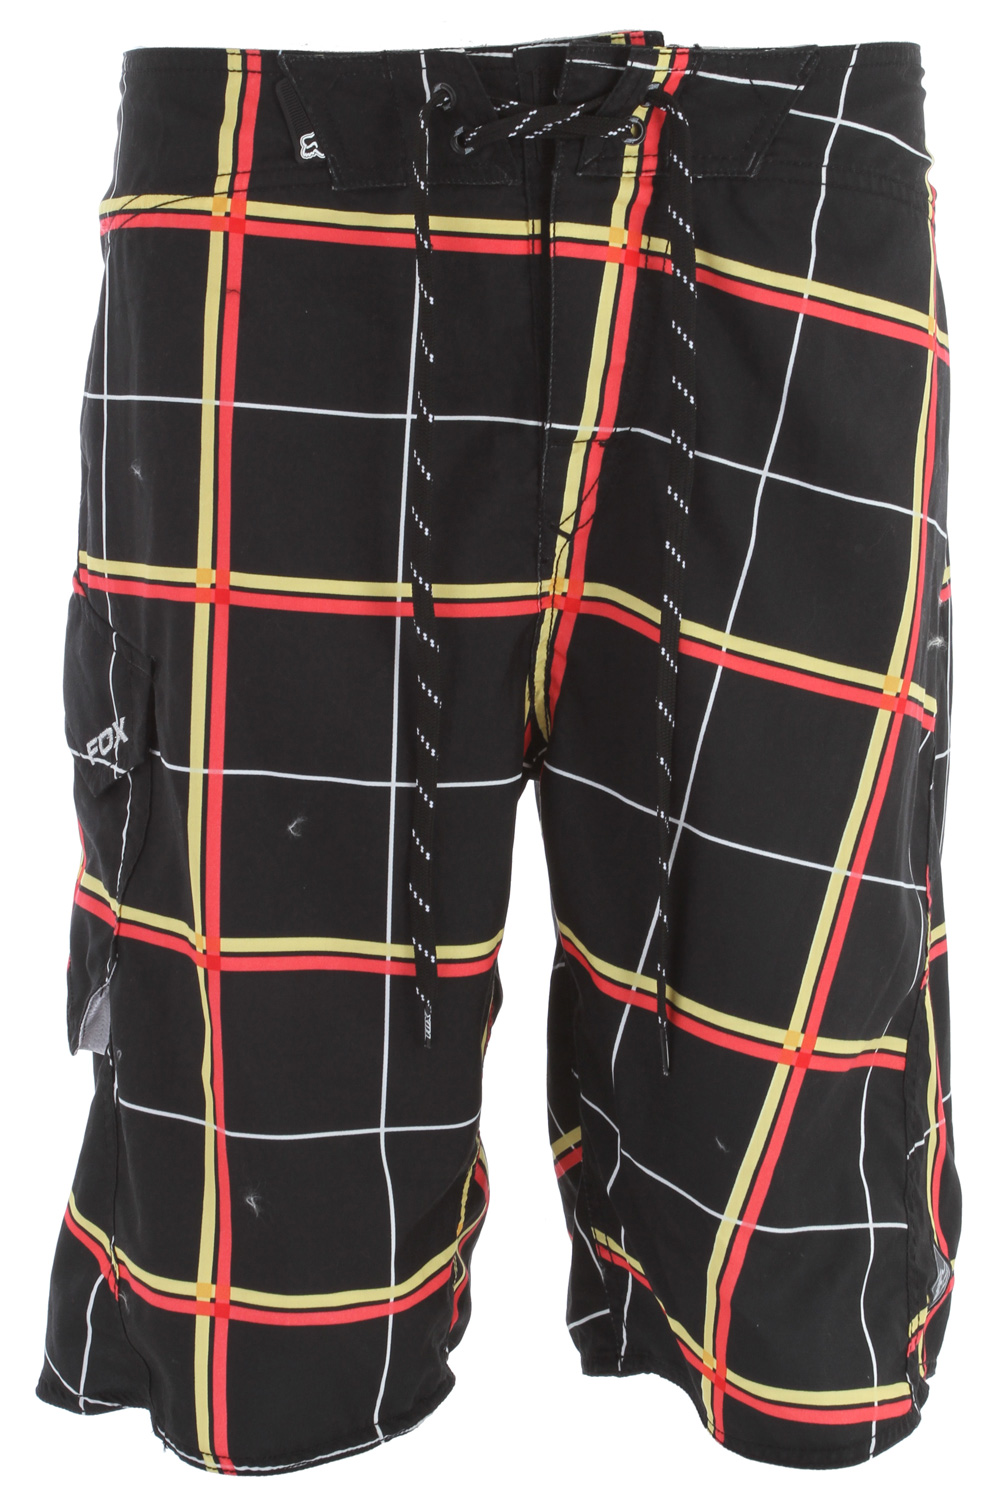 "Surf Key Features of the Fox Lloyd Plaid Boardshorts: 100% polyester microsuede All over sublimated graphics Fox embroidery at pocket flap Side pocket with mesh below Velcro fly 22 1/2"" outseam - $49.50"